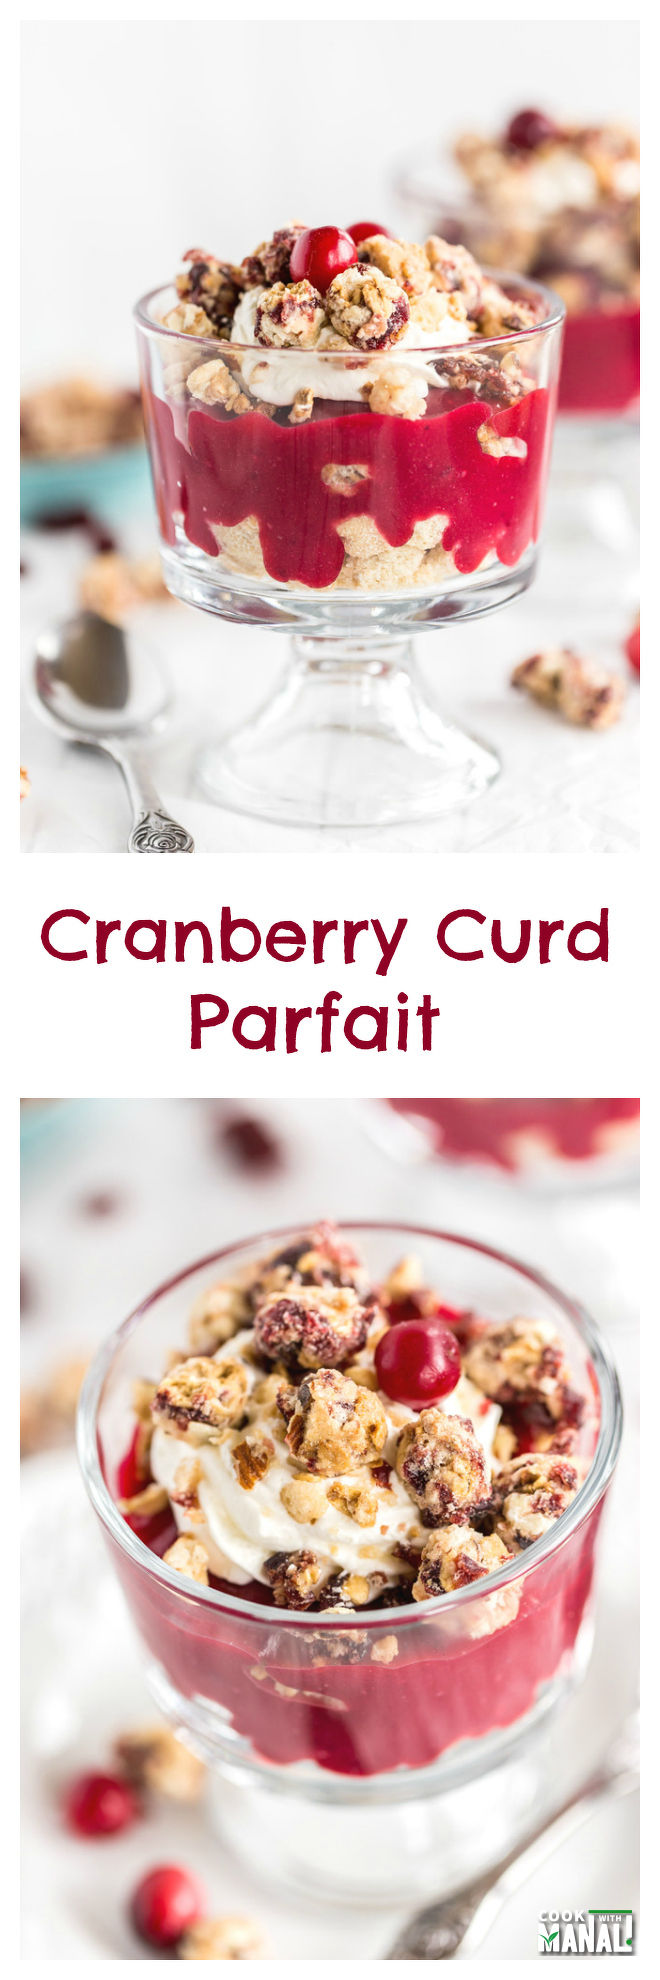 Cranberry Curd Parfait Collage